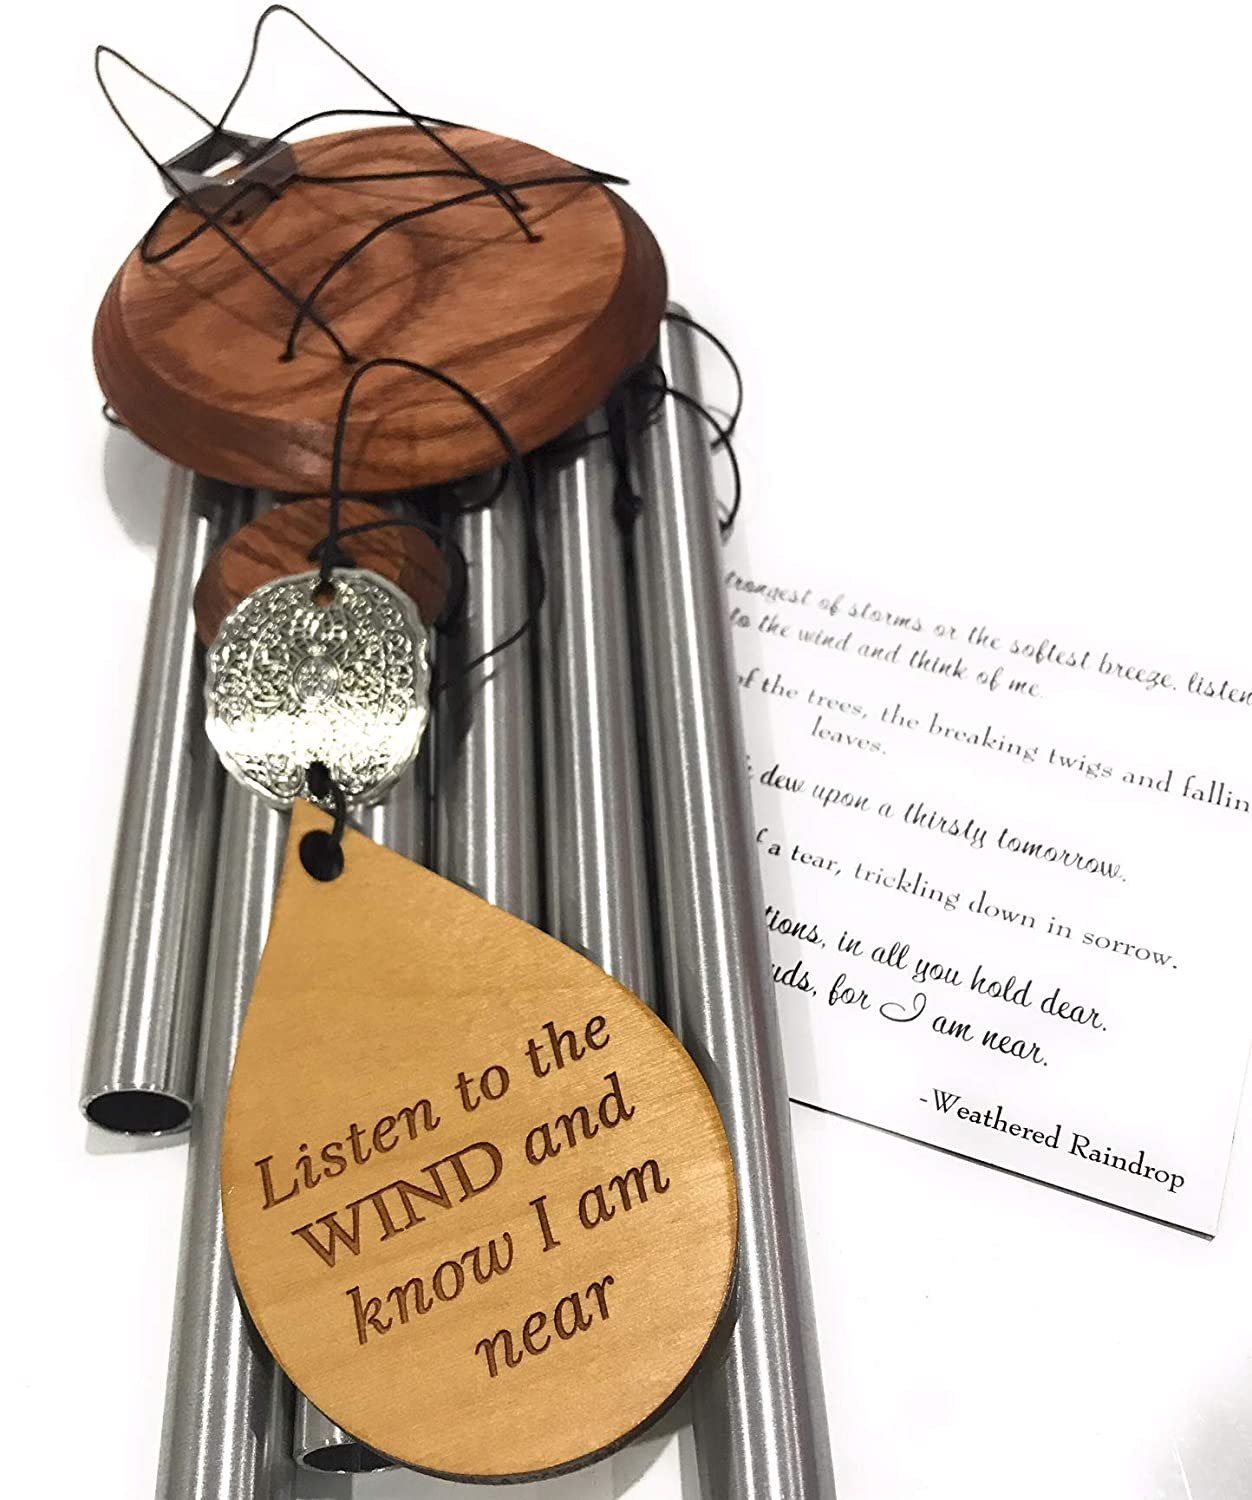 Memorial Sympathy 17 inch Gift Wind Chime Ships TODAY In Sympathy After Loss in Memory of Loved One Silver Listen to the Wind Memorial Garden Remembering a loved one